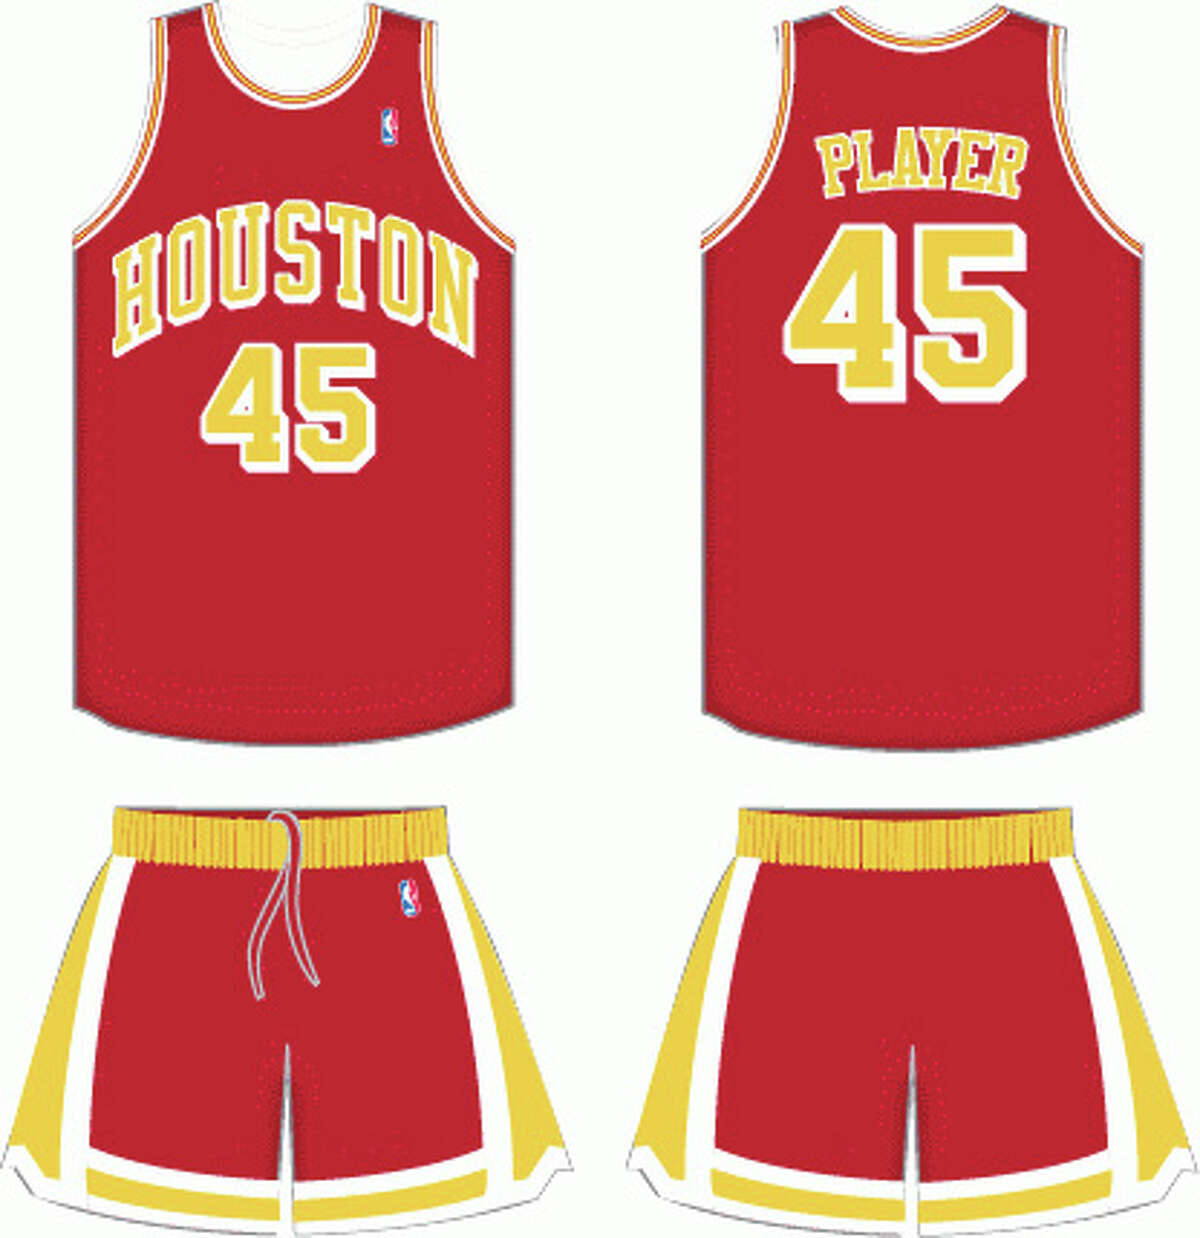 1971-72: Gold lettering The Rockets' first season in Houston had them basically wearing the same design on their jerseys as they wore in San Diego, except the colors were switched to red and yellow from San Diego's green and gold.